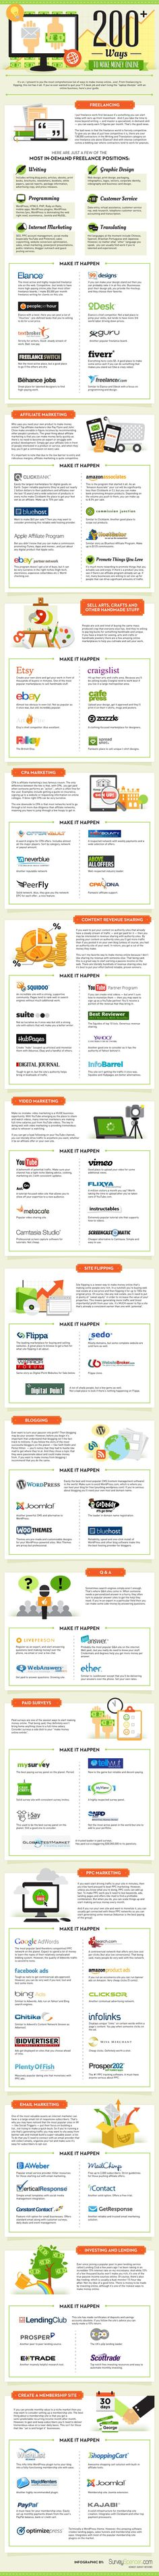 Infographic - 200 easy online money making ideas -Scam Free Ways To Make Money Online, How to earn money online